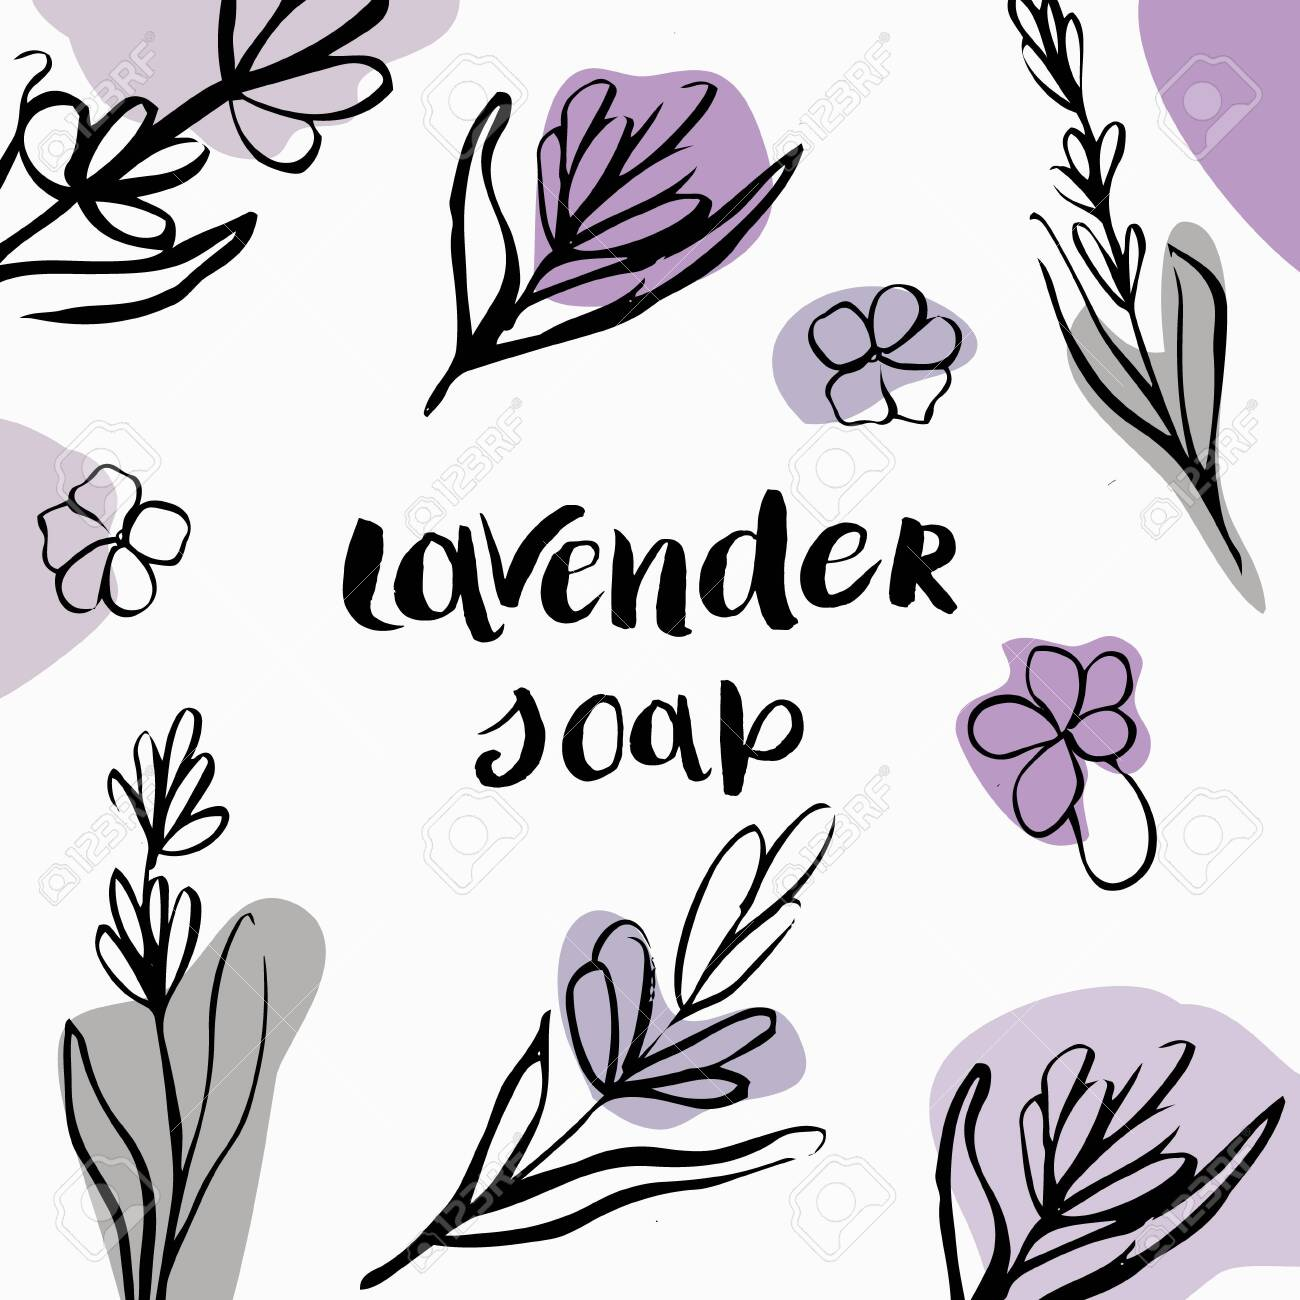 Vector packaging design and template for packaging lavender soap. - 146097062